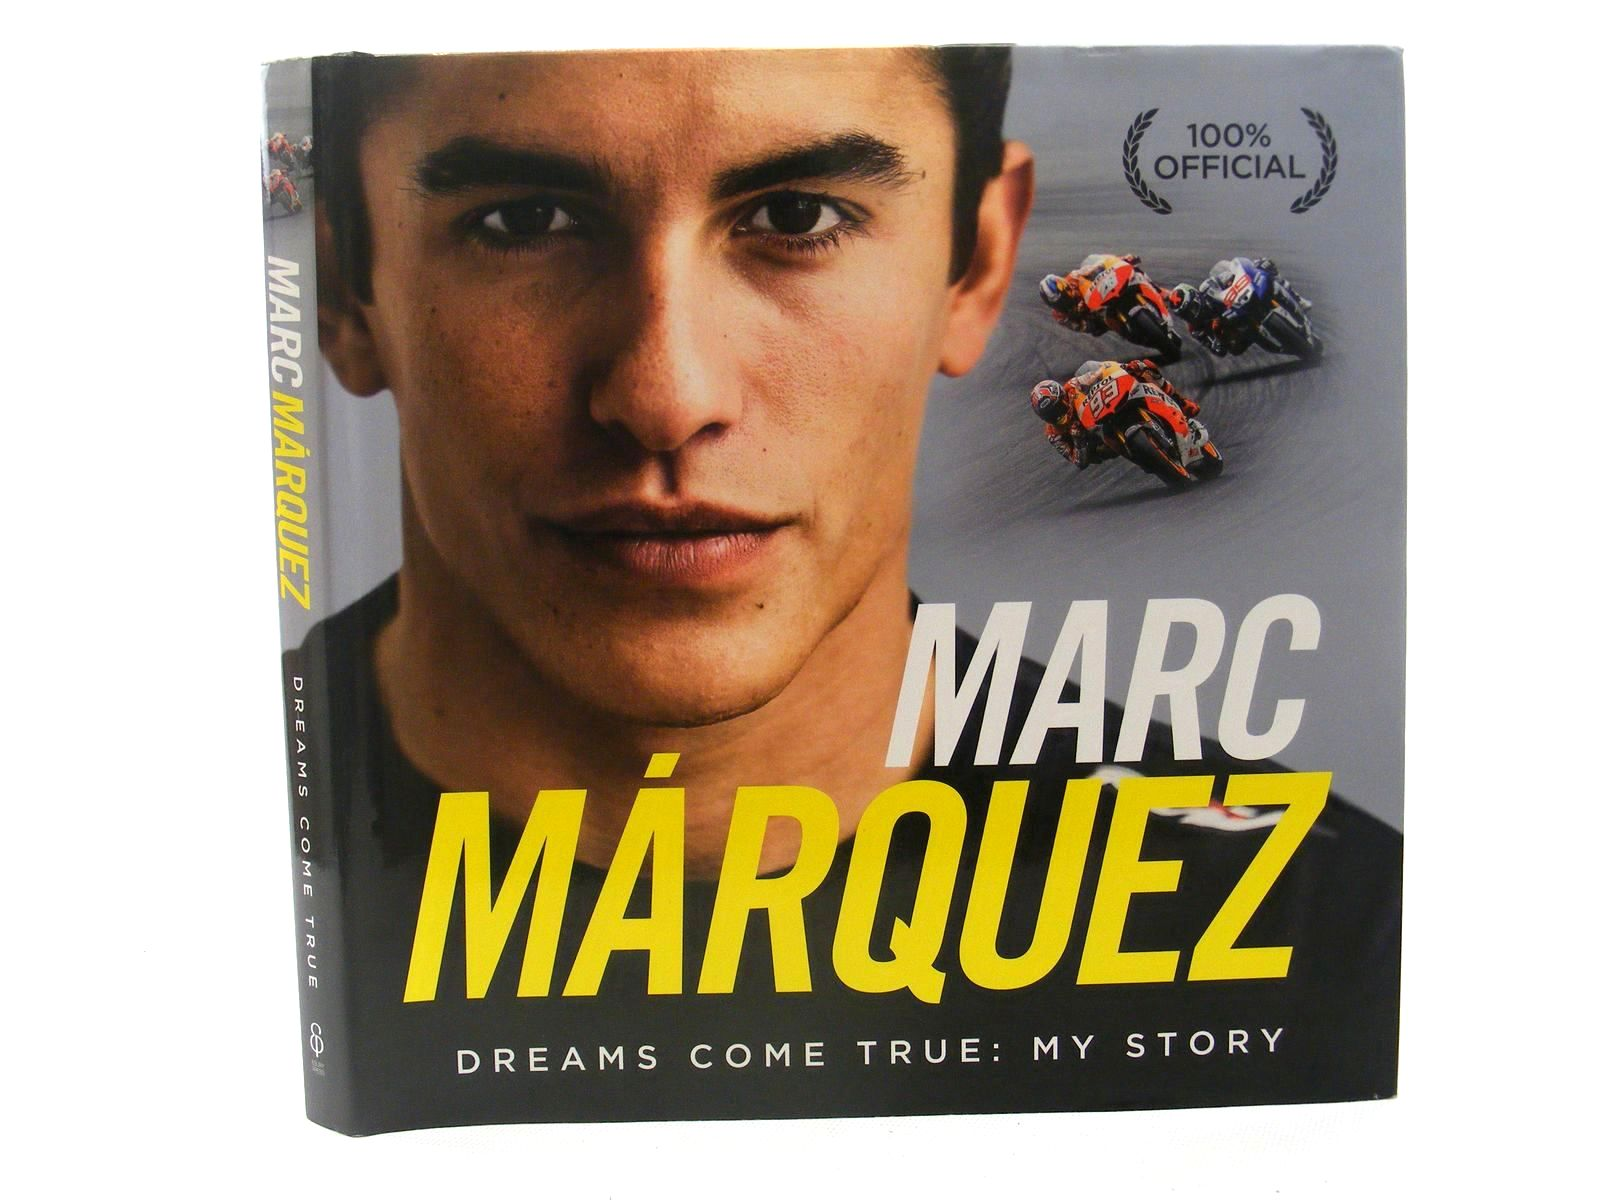 Photo of MARC MARQUEZ DREAMS COME TRUE: MY STORY written by De Rozas, Emilio Perez published by Ebury Press (STOCK CODE: 1610307)  for sale by Stella & Rose's Books